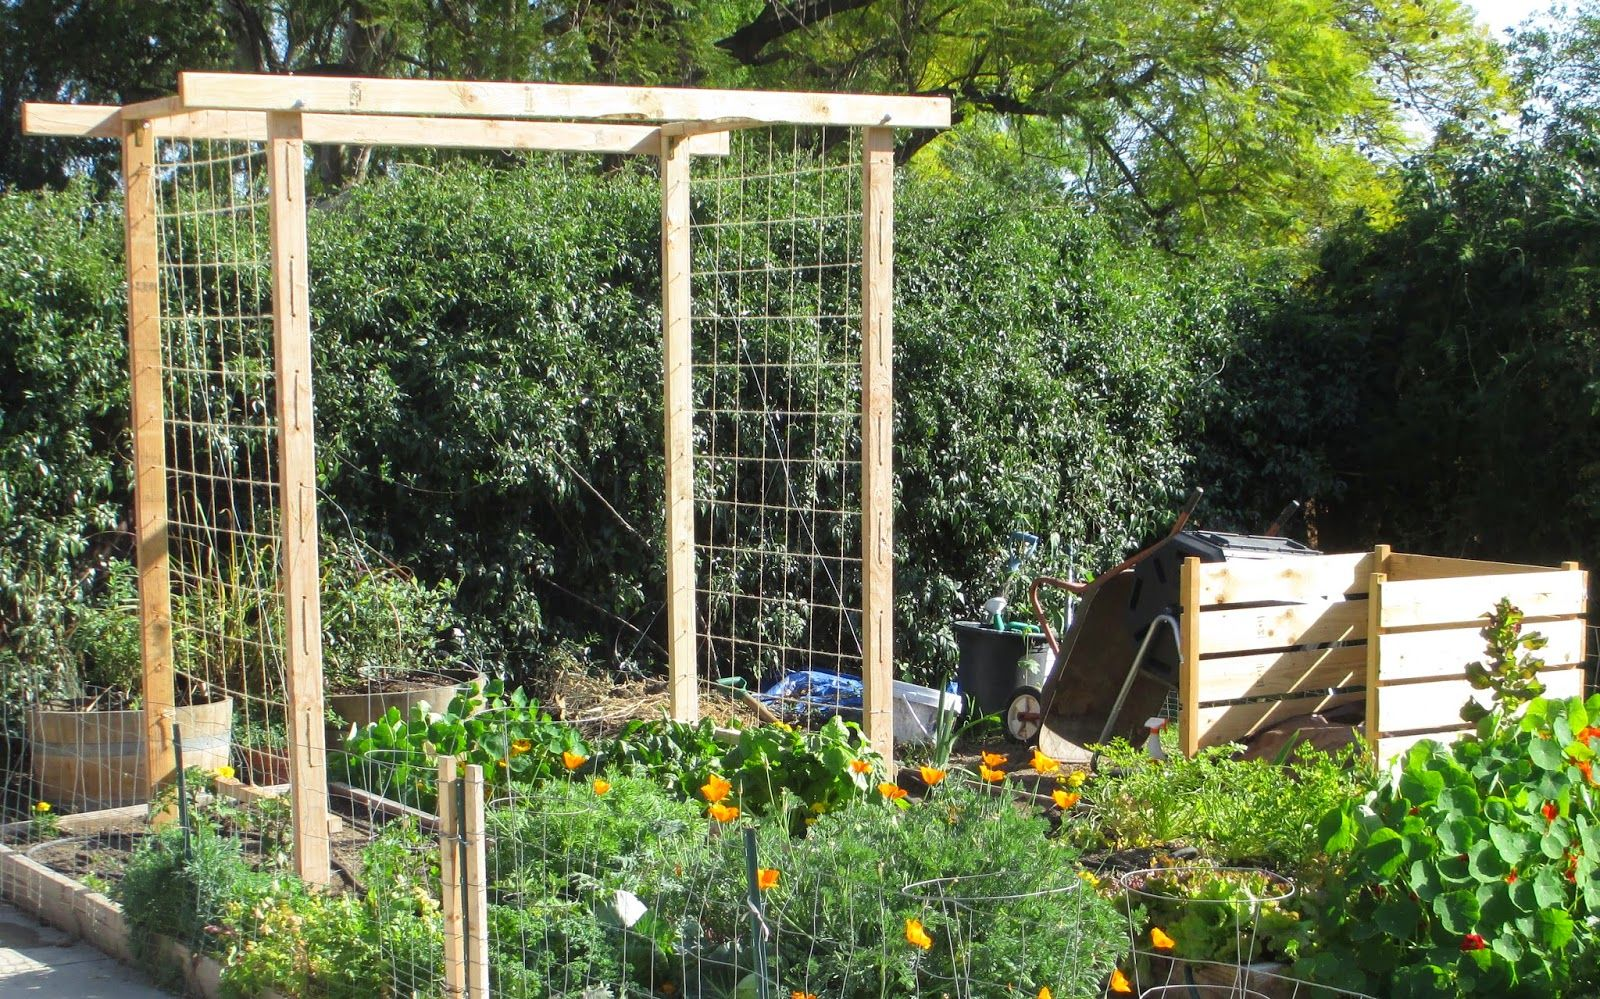 Pea Trellis Ideas Part - 26: Andieu0027s Way: Trellis Ideas For Tomatoes, Cucumbers, Beans, Peas, Melons And